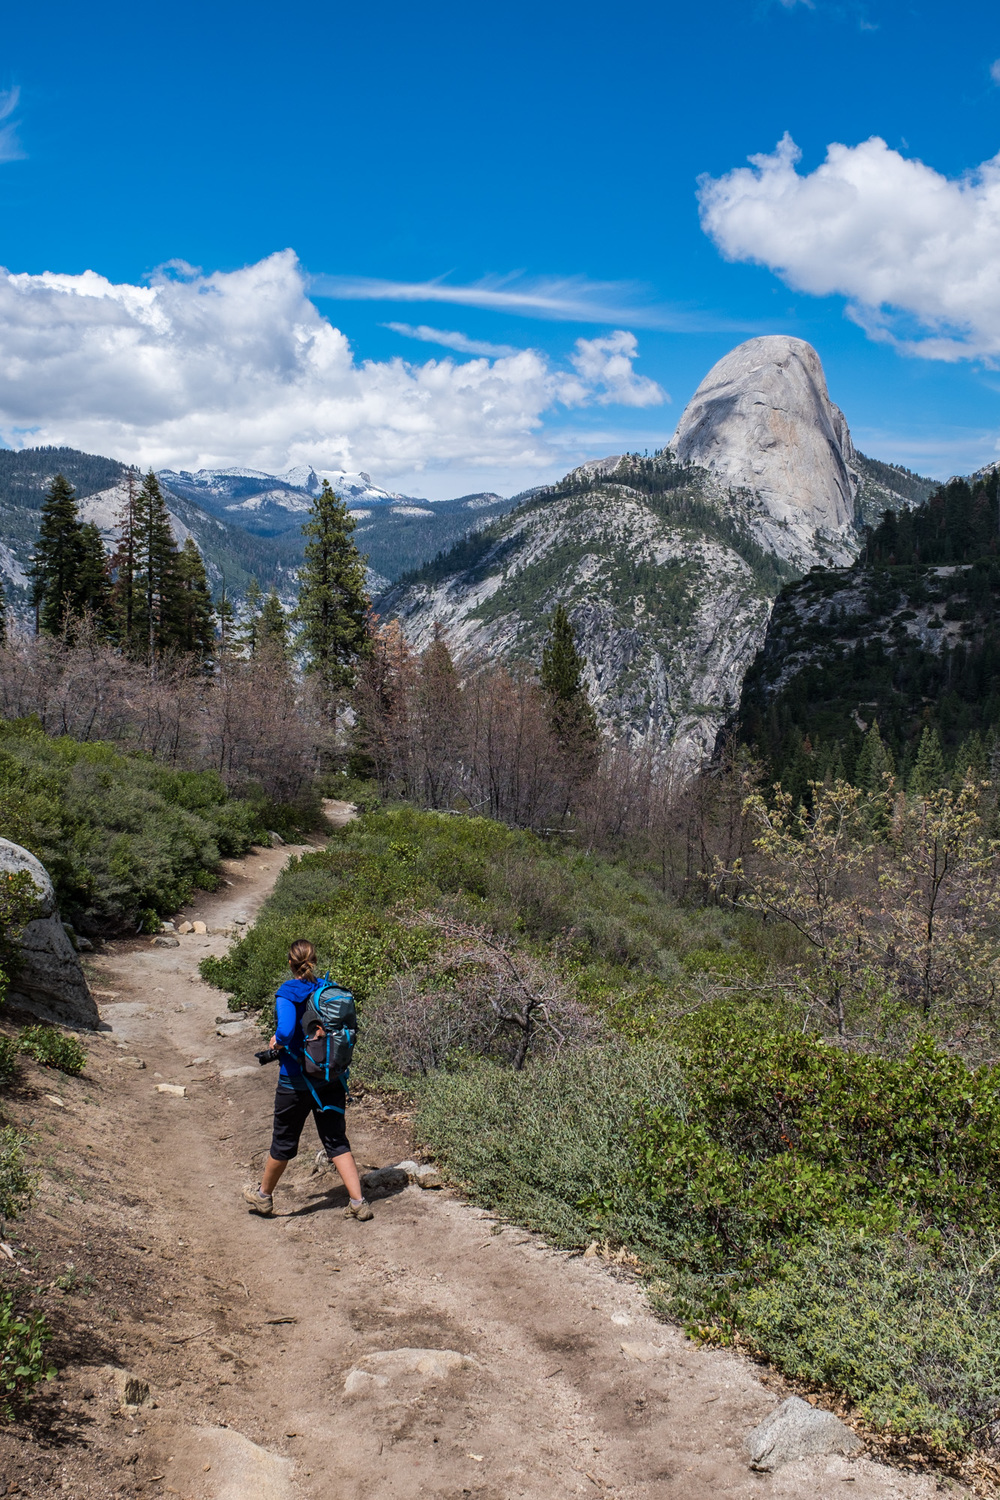 The Panorama Trail winds around the backside of Half Dome.